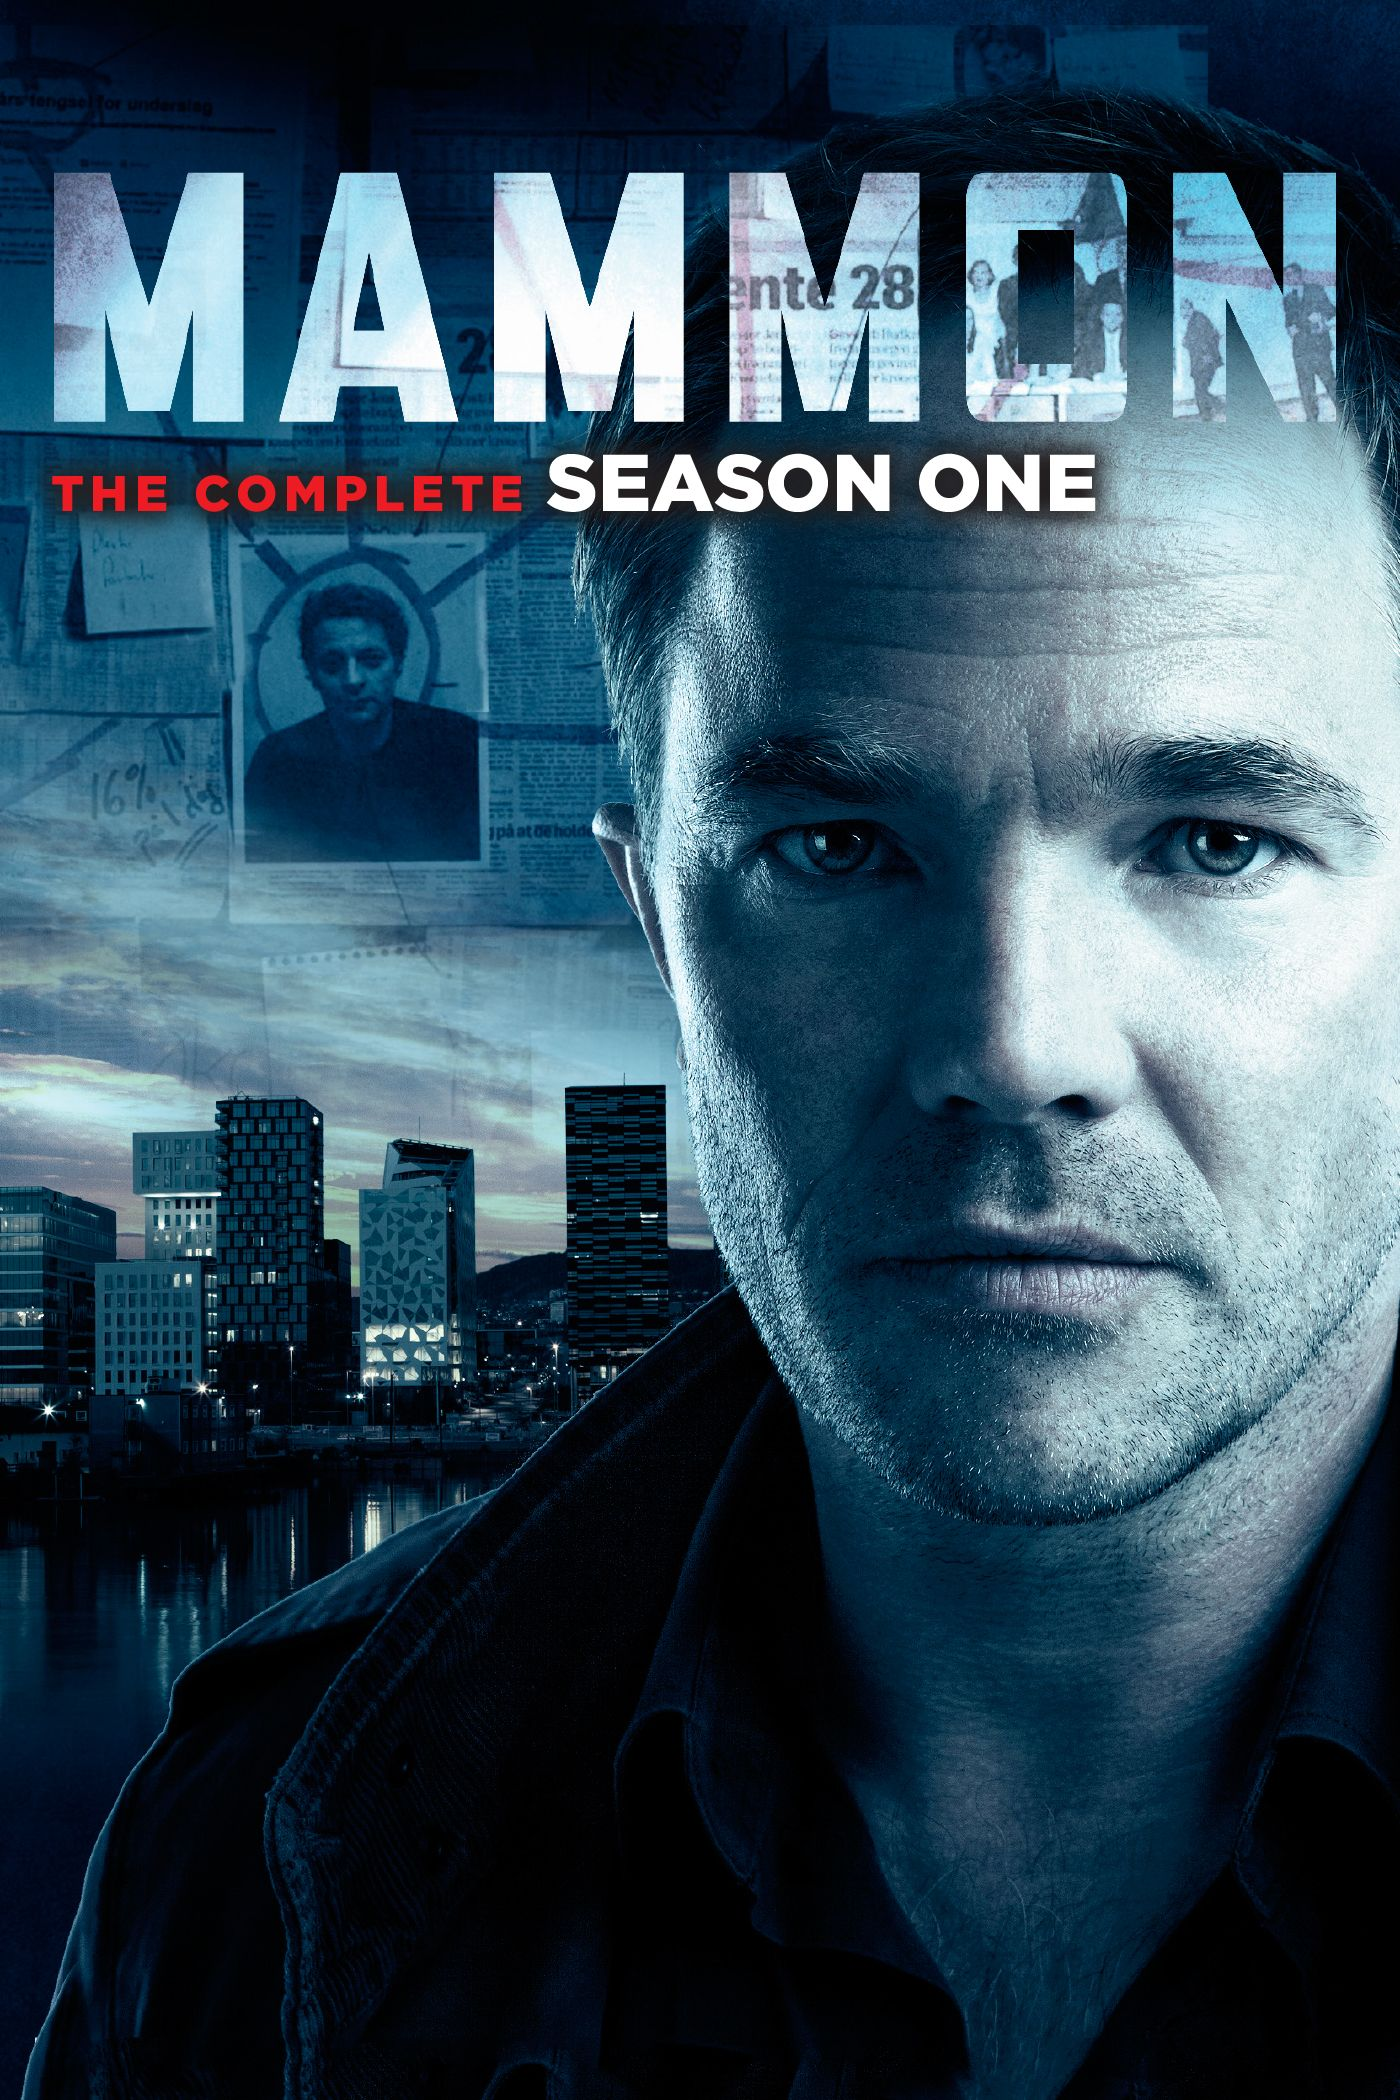 Mammon Serie Staffel 2